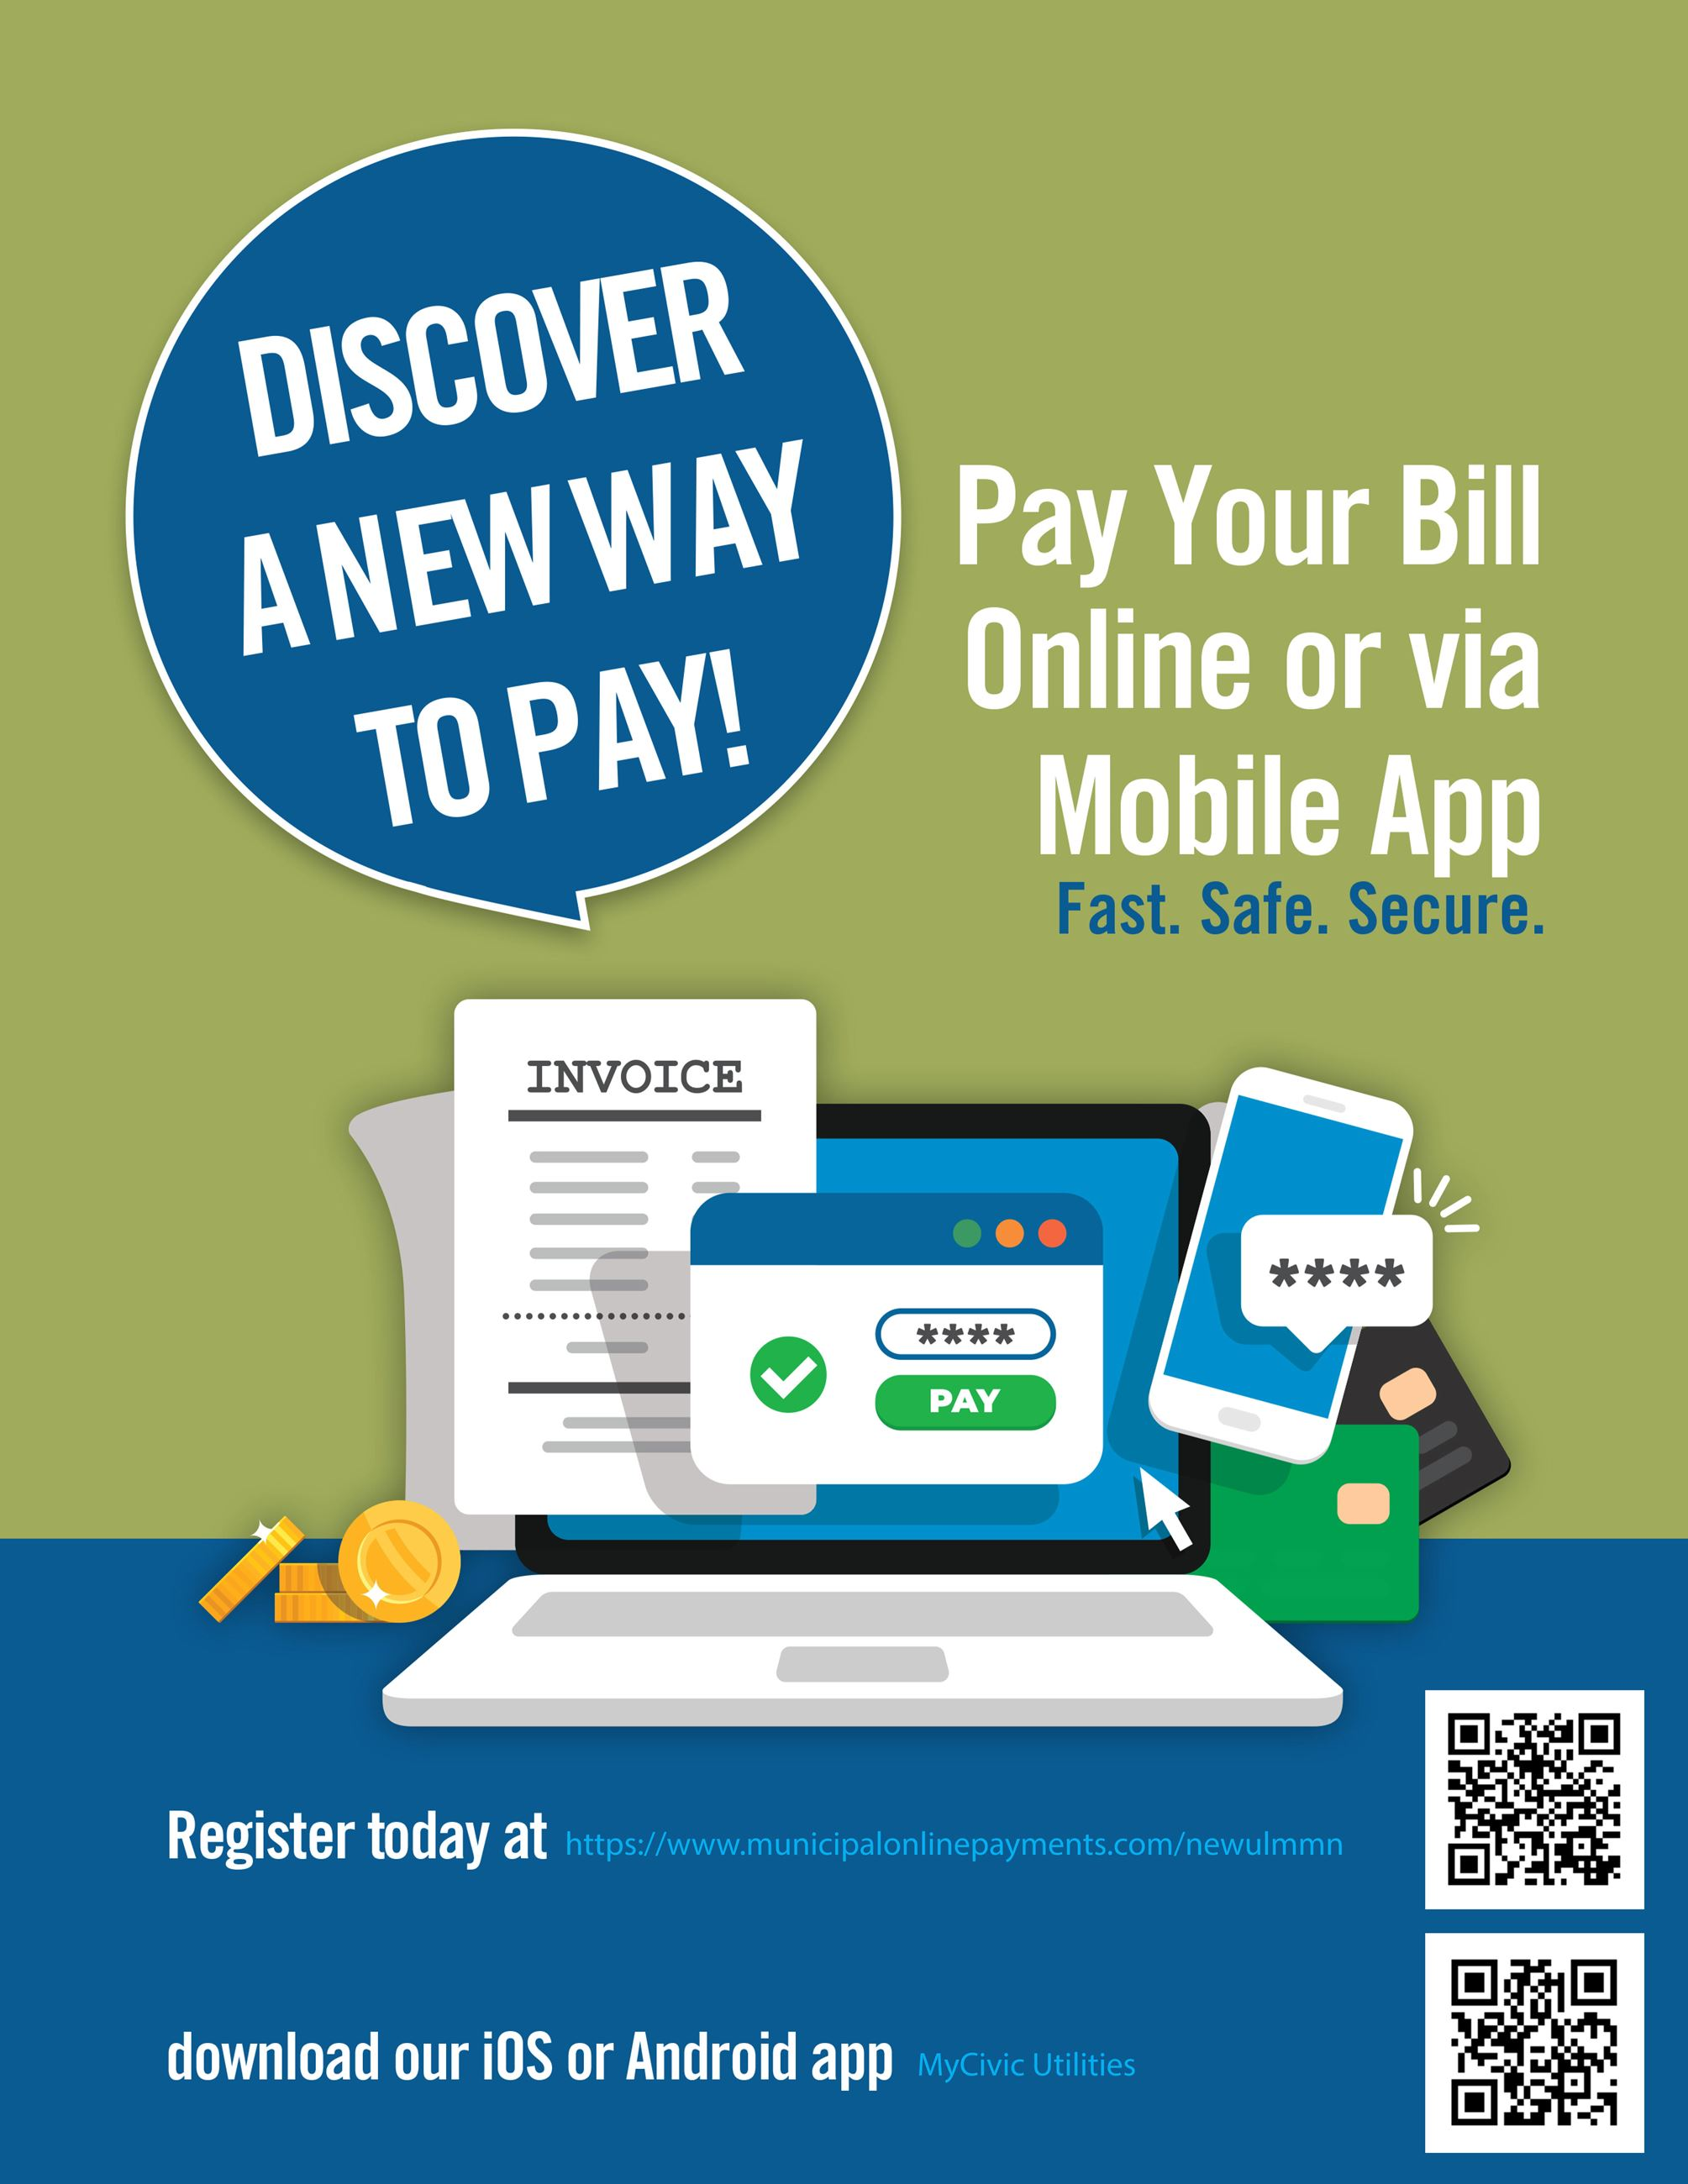 Pay Your Bill Online or Via Mobile App